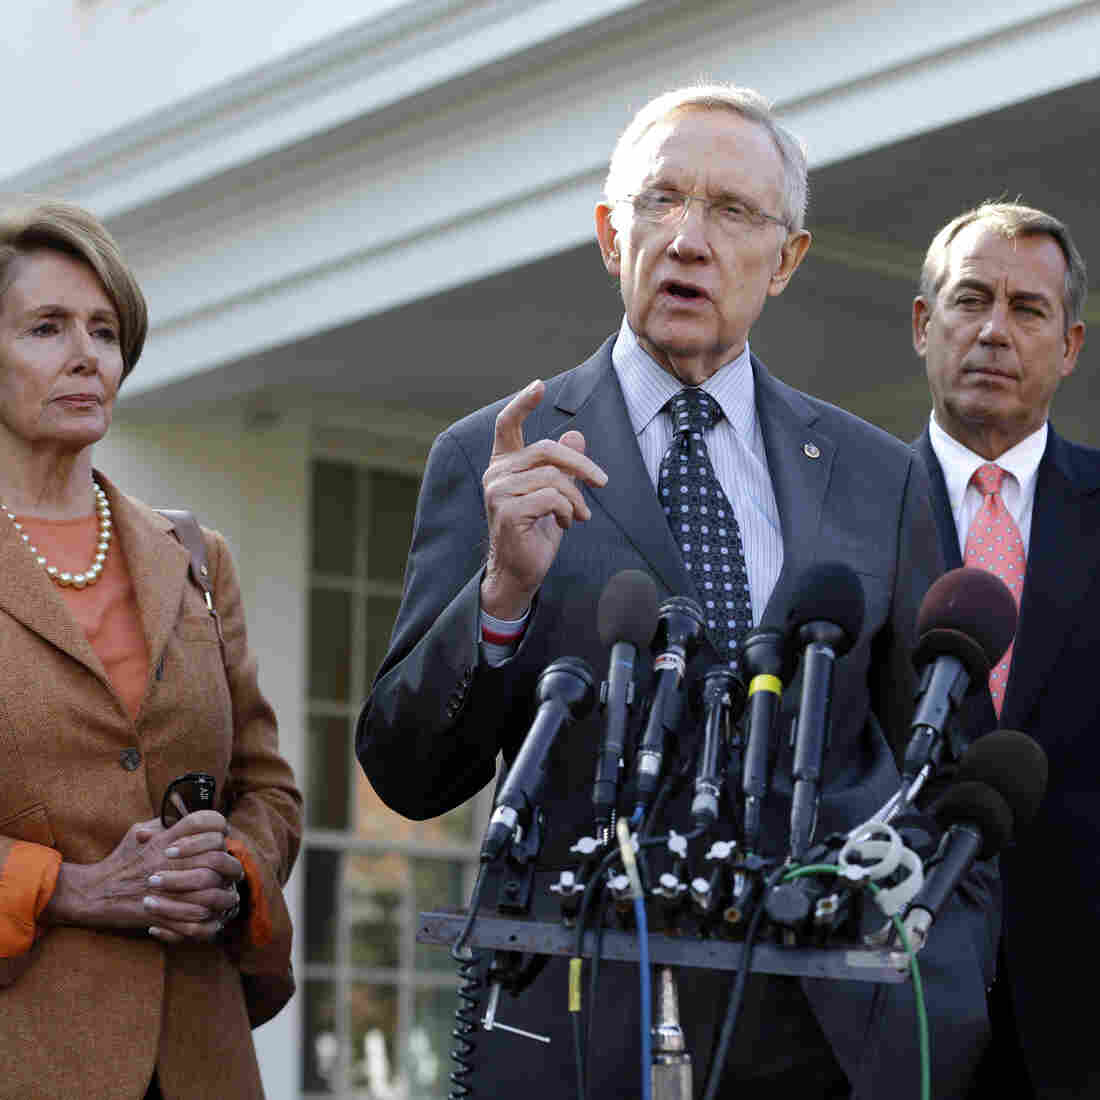 Congressional leaders after their meeting with President Obama Friday. From left: House Minority Leader Nancy Pelosi (D), Senate Majority Leader Harry Reid (D), House Speaker John Boehner (R) and Senate Minority Leader Mitch McConnell (R).